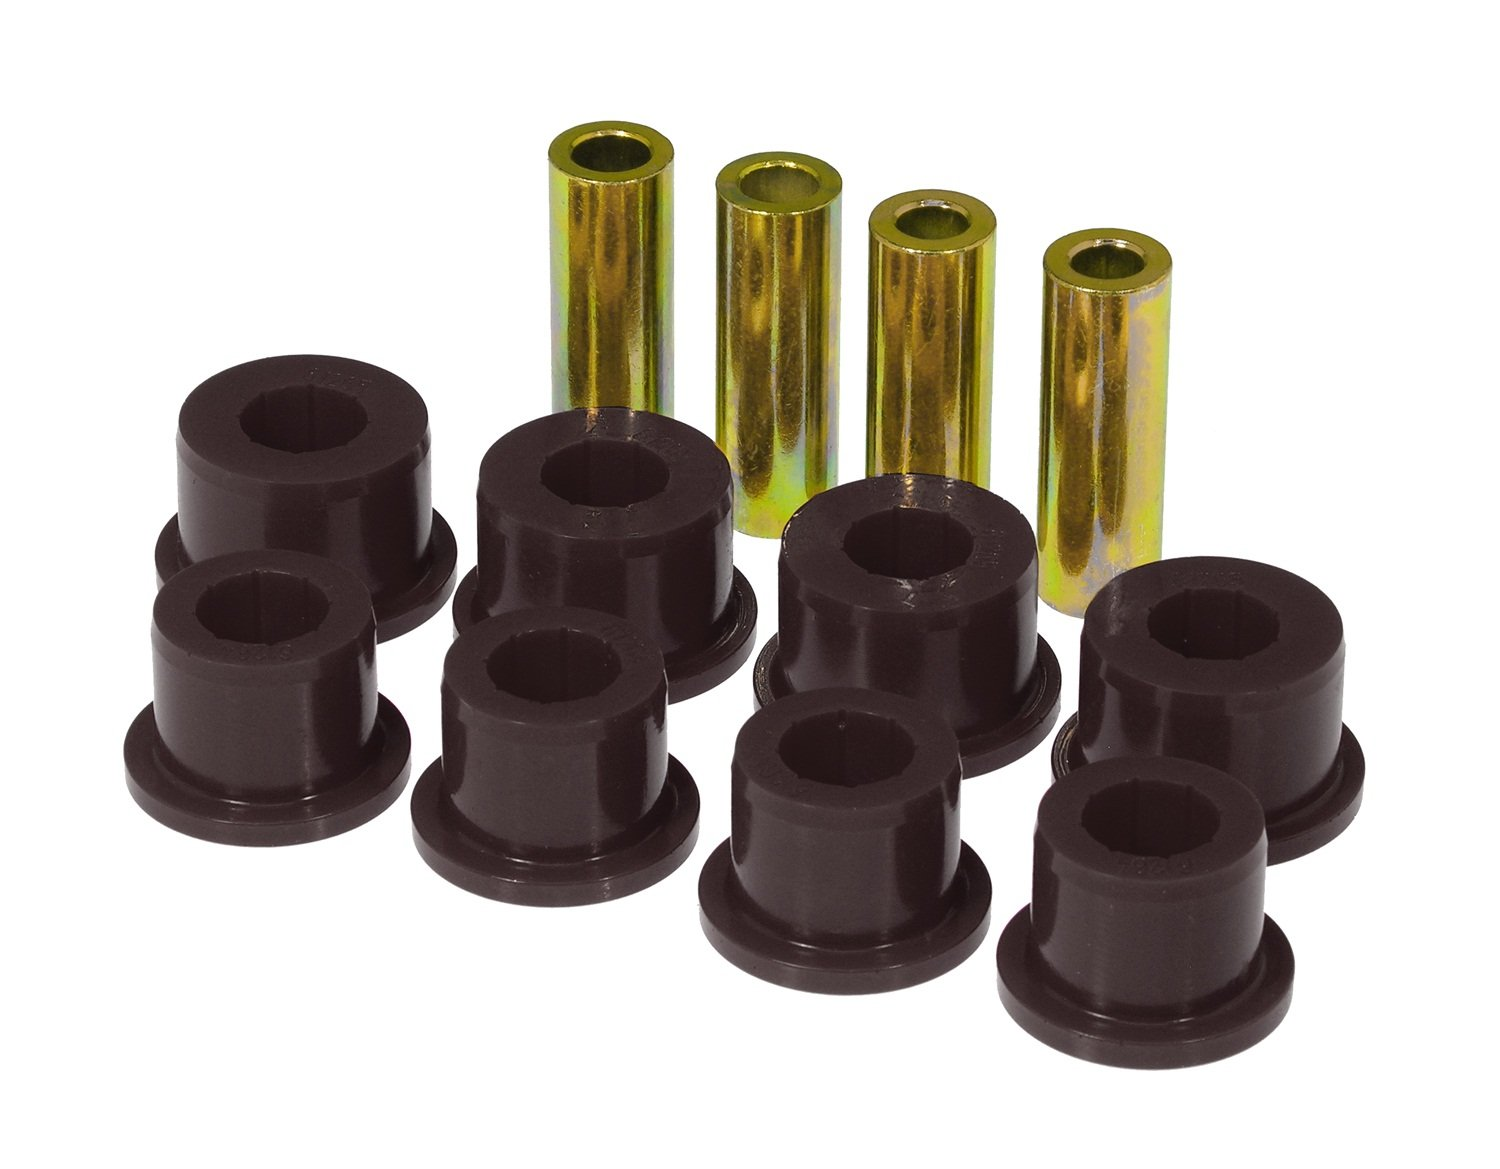 Prothane 7-1057 Leaf Spring Eye and Shackle Bushing Kit